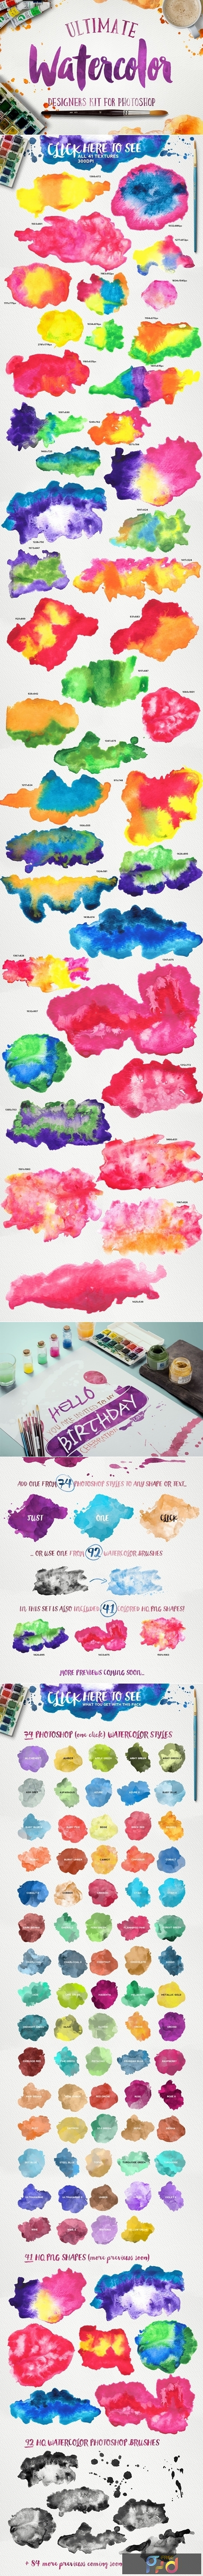 Watercolor KIT for Photoshop 223071 1